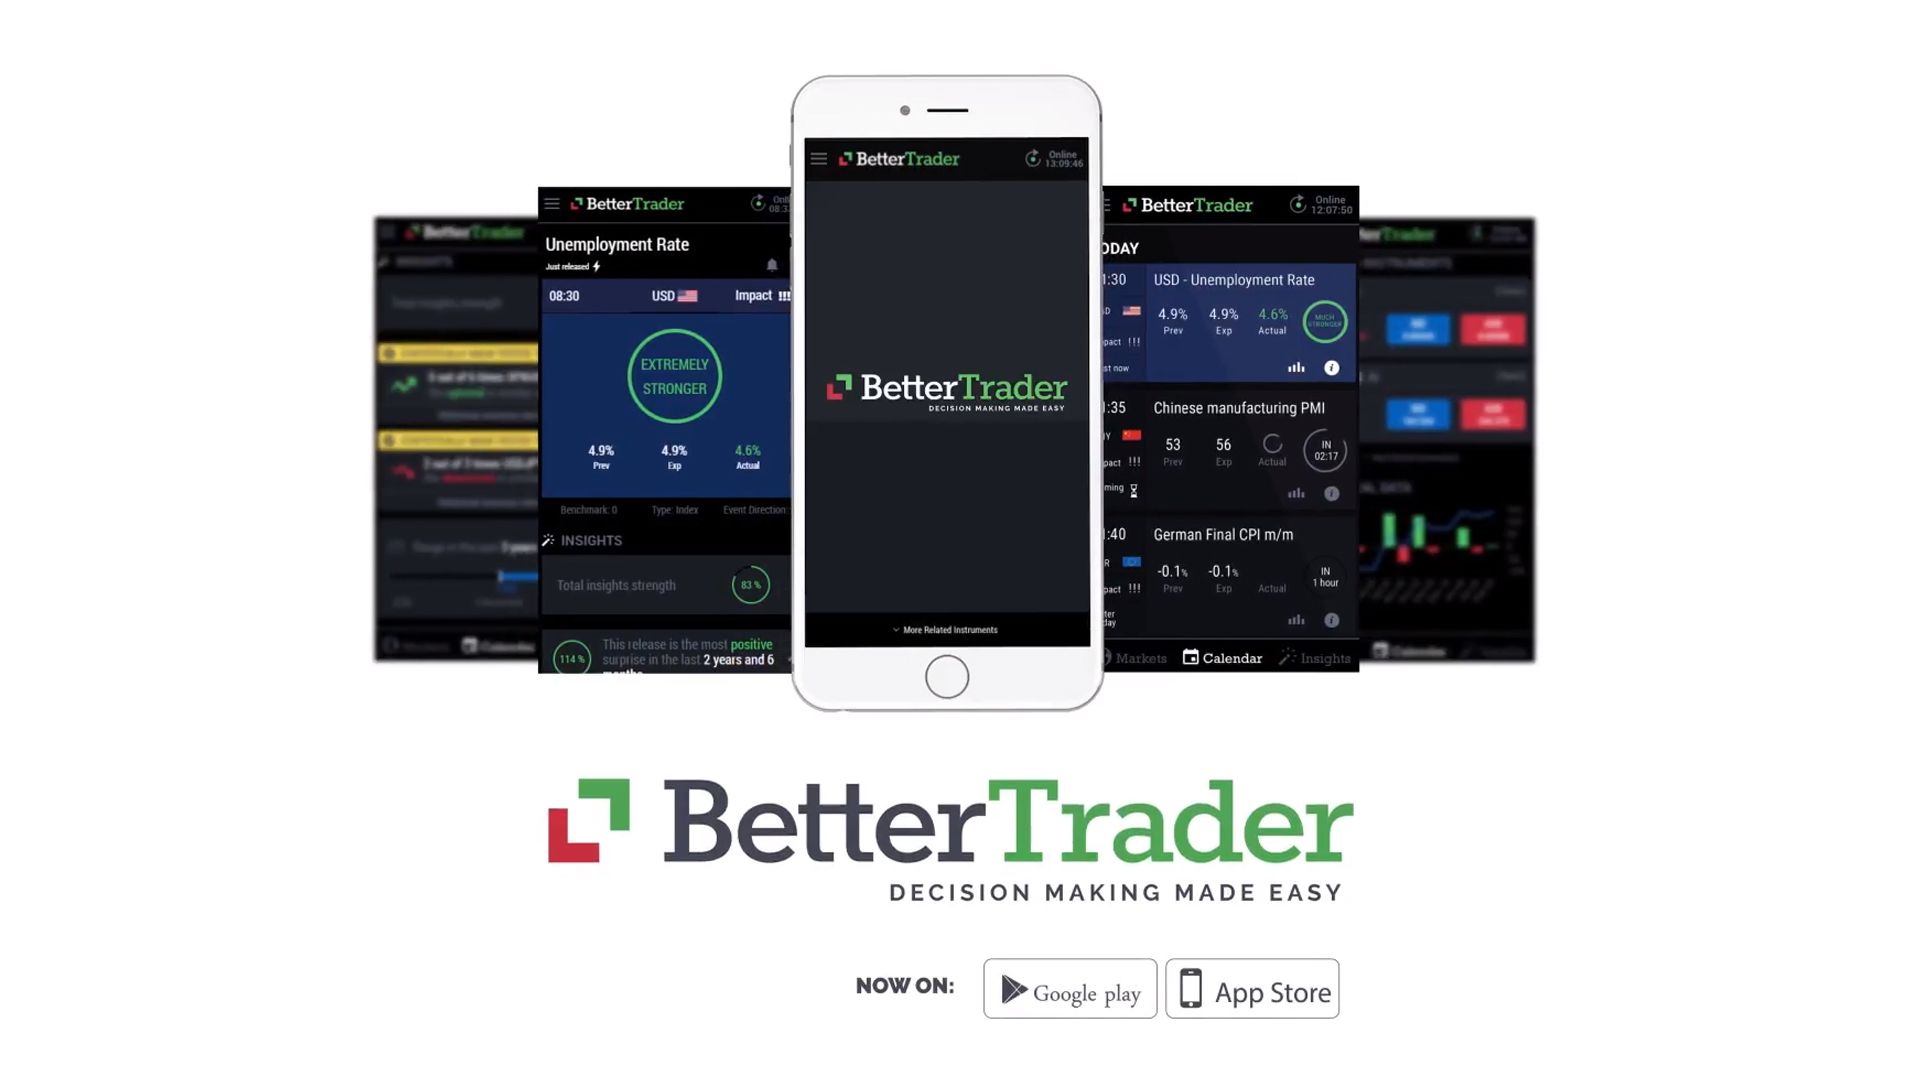 bettertrader1.png